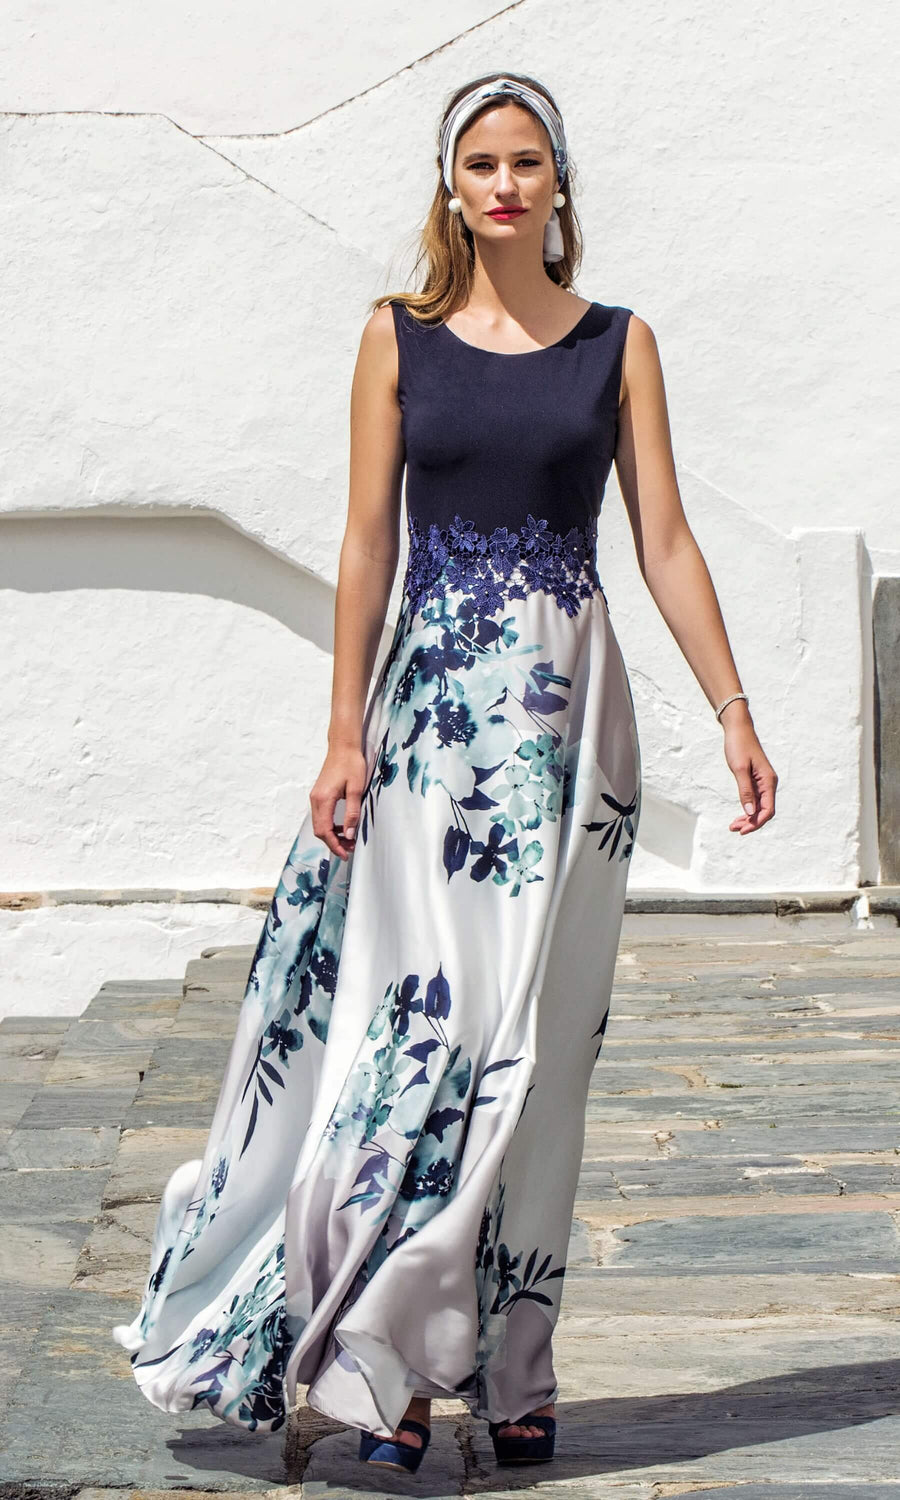 NAVY MICHAELA LOUISA FLORAL PRINT MAXI DRESS